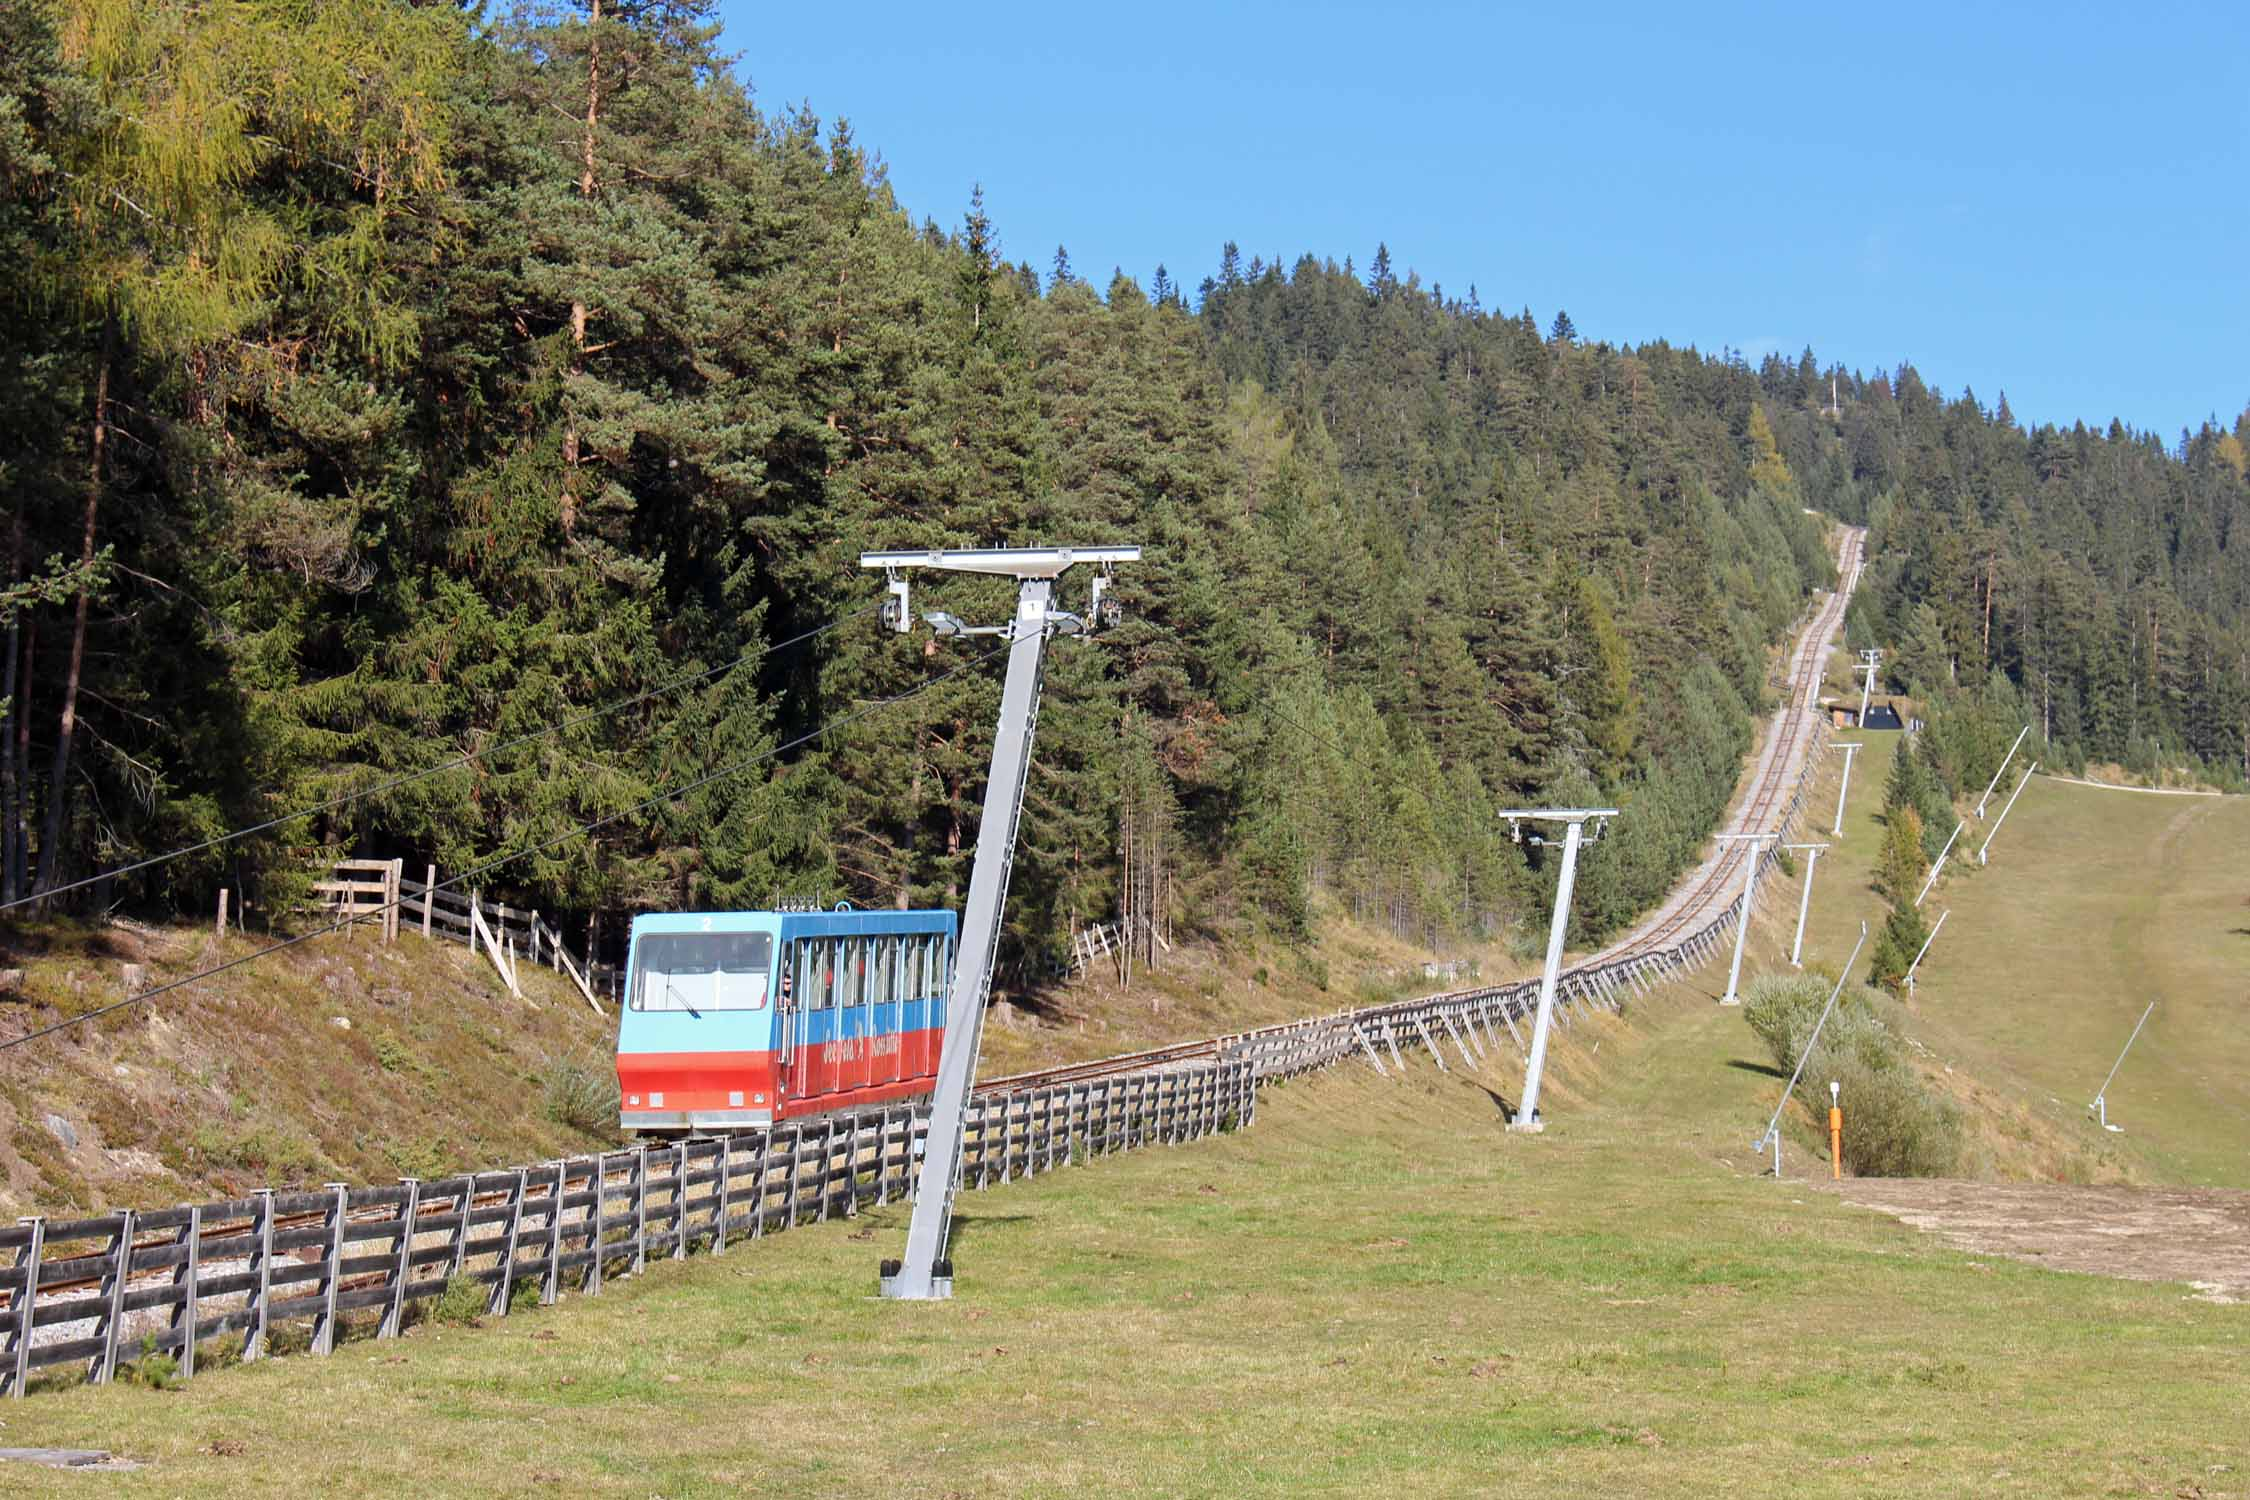 The funicular of Seefeld, Tirol